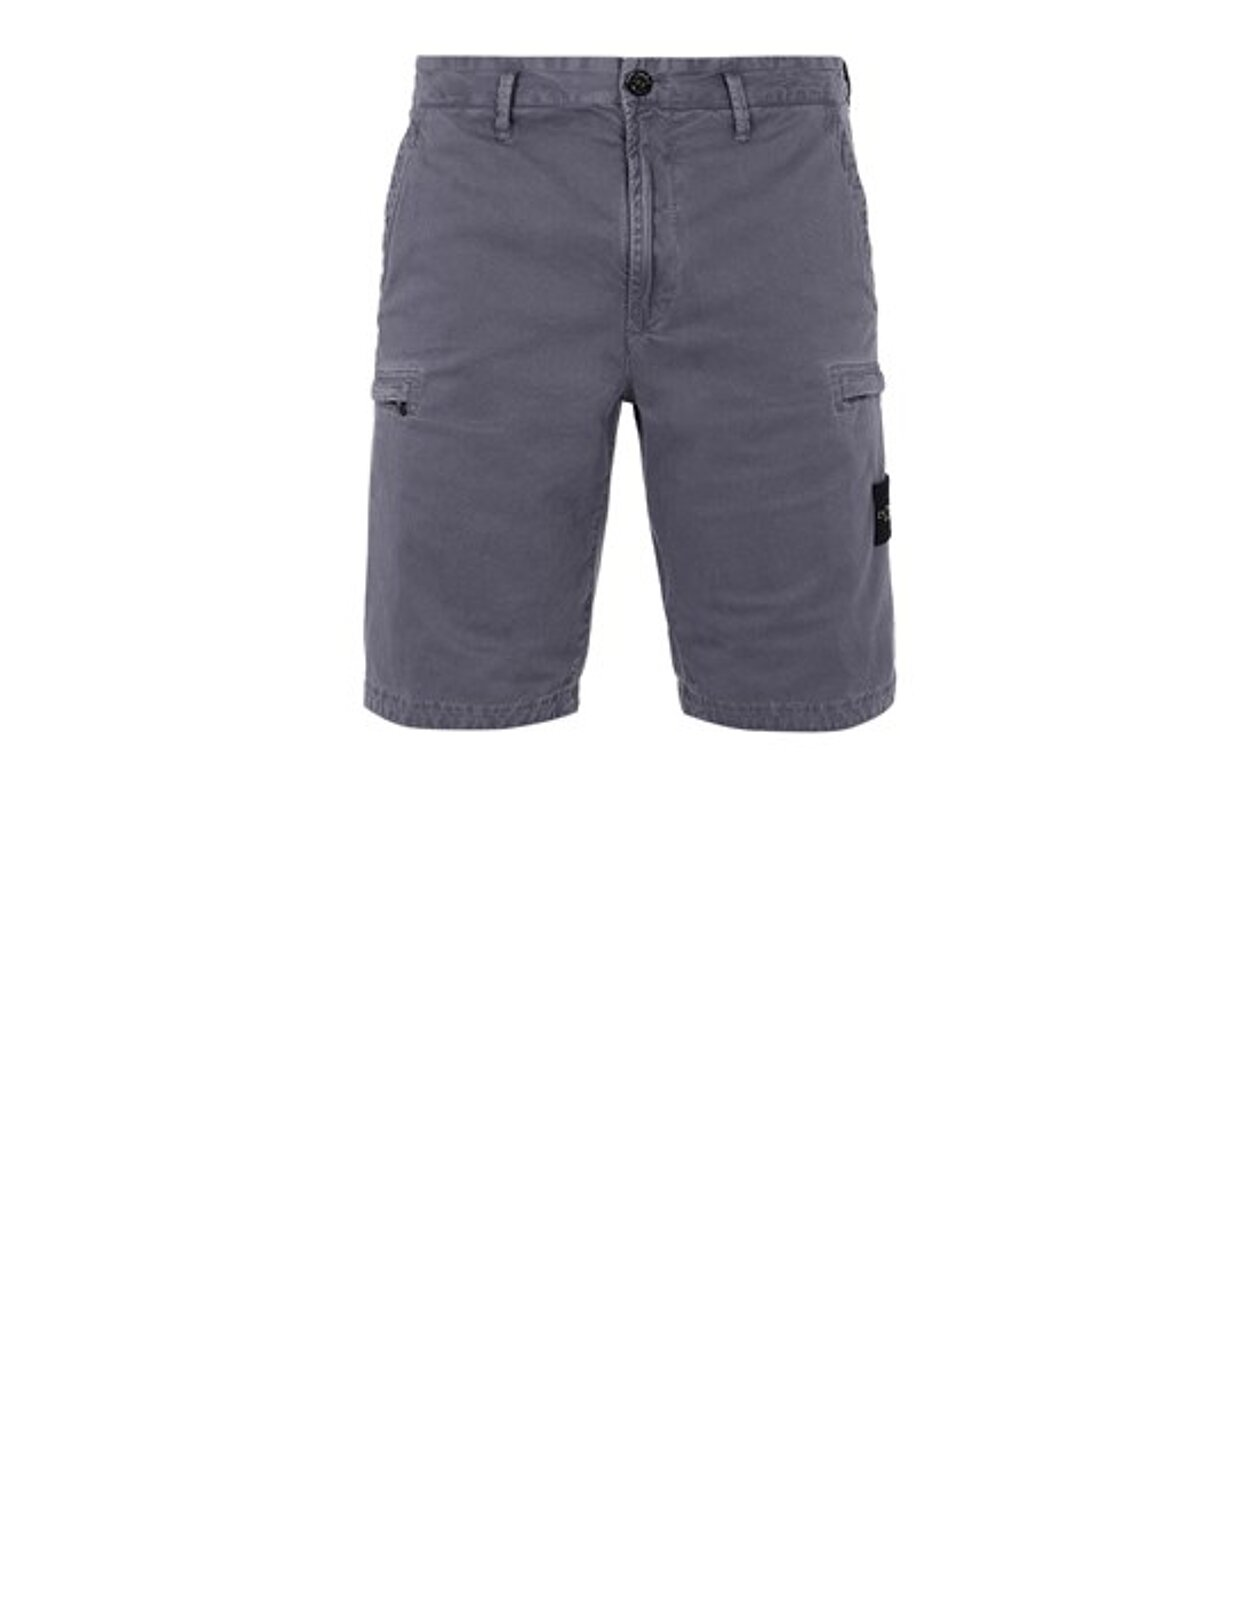 L0504 T.Co Old - Stone Island